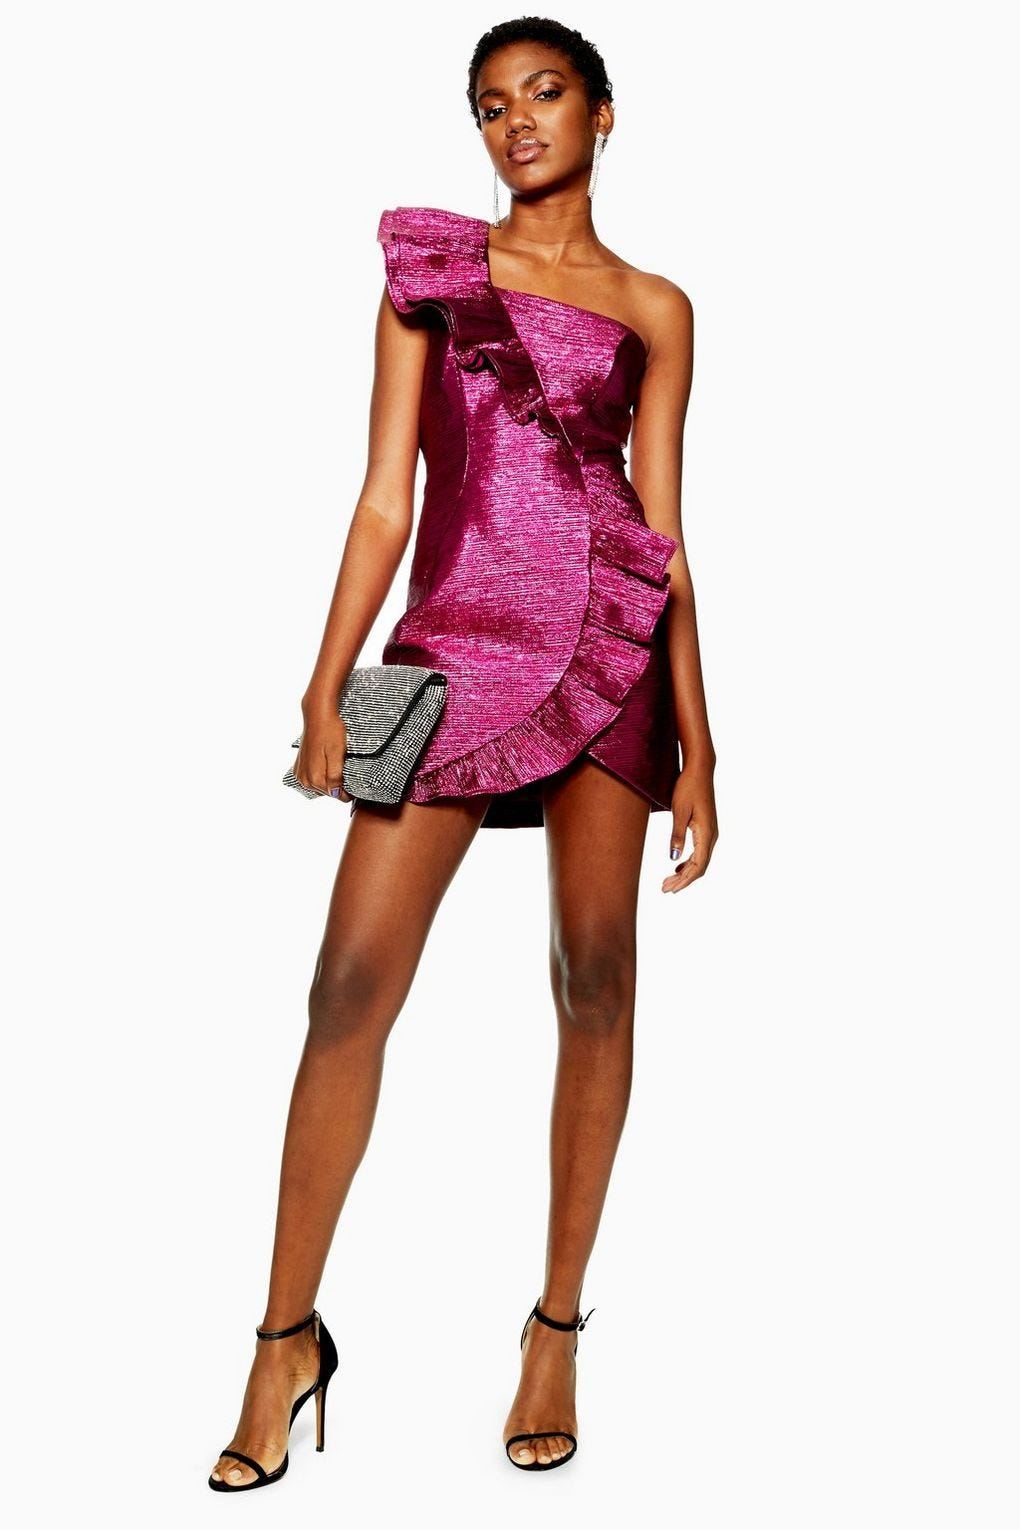 a66671e0c8f7f Best Party Dresses - Sequin, Animal Print, Ruffled